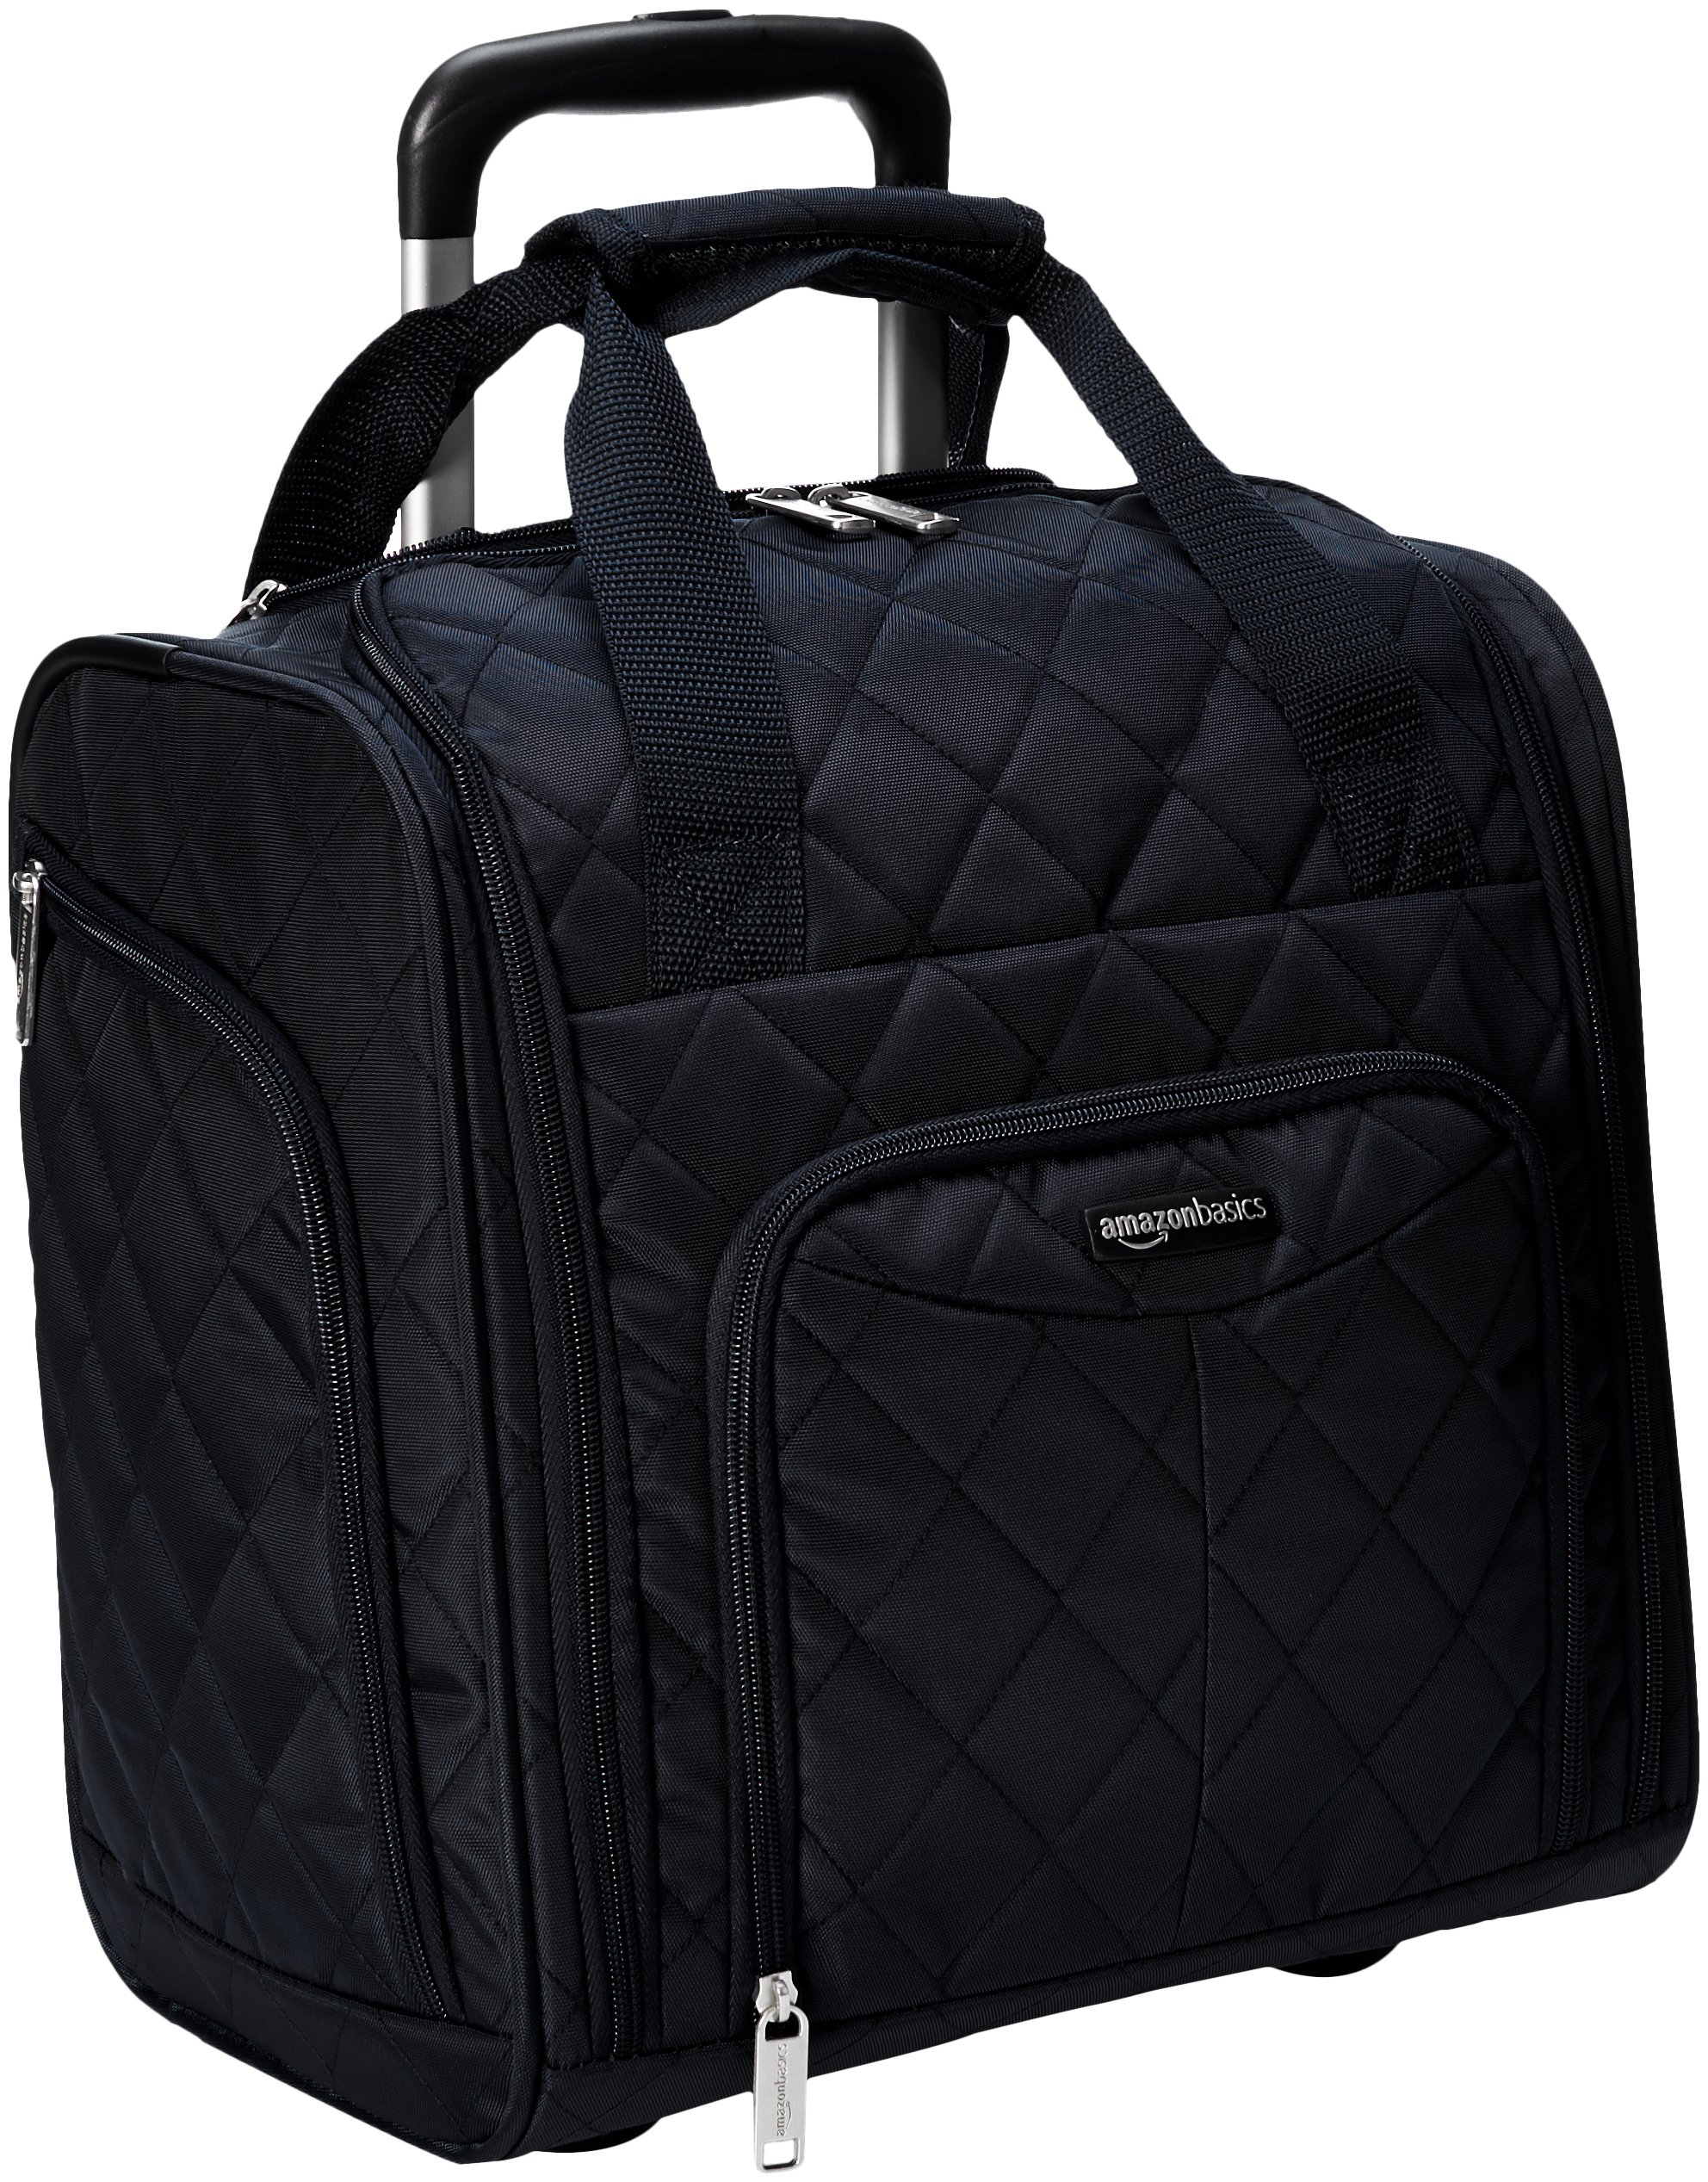 AmazonBasics Underseat Luggage, Black Quilted